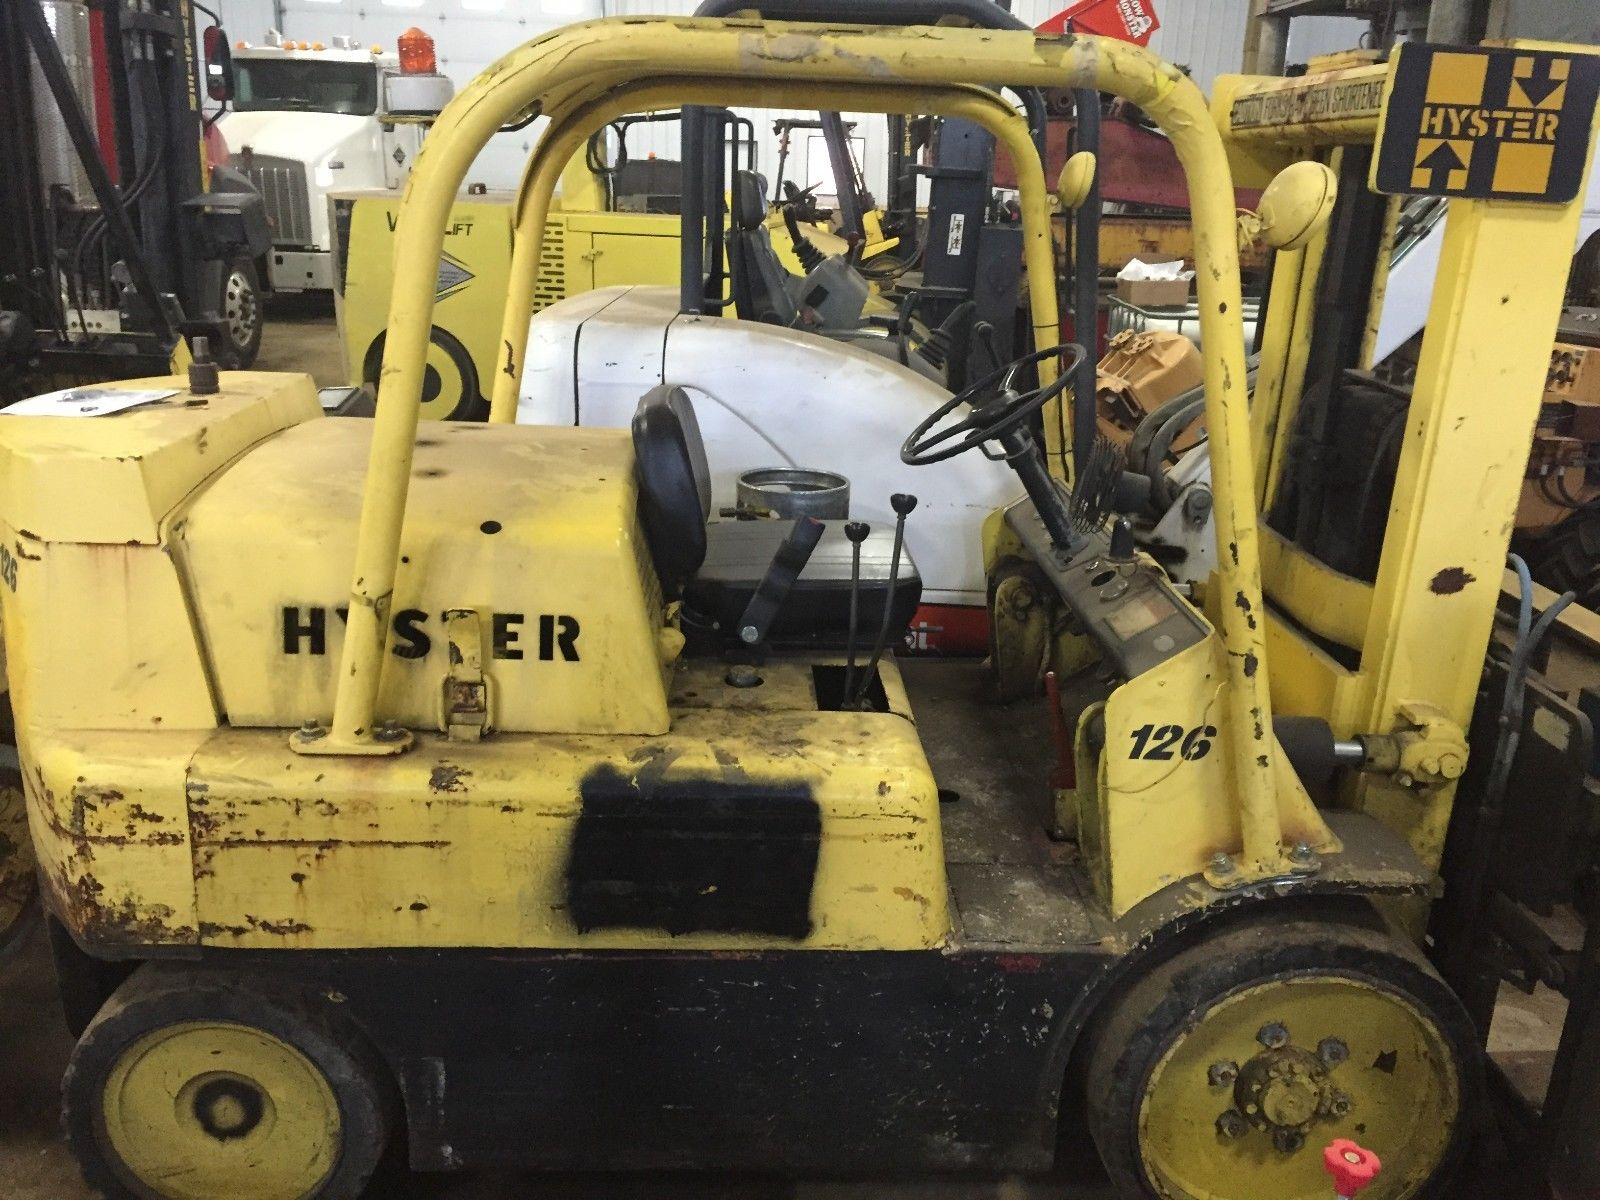 Hyster S150 15,000lb Capacity For Sale